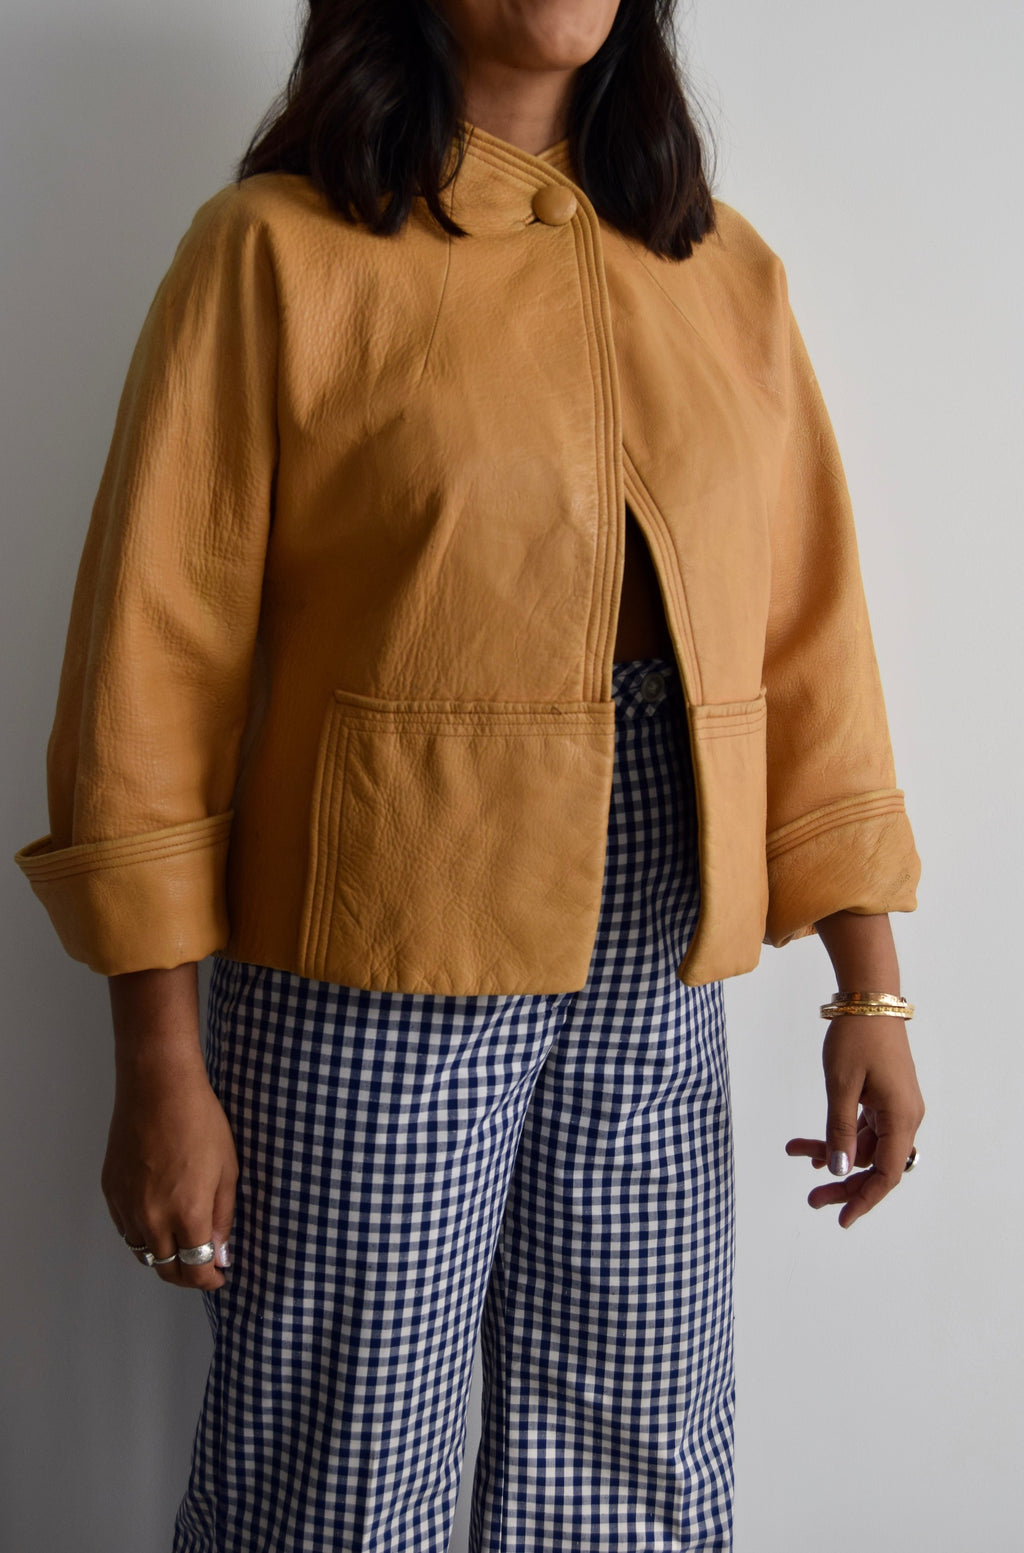 Vintage Buttery Fawn Leather Jacket